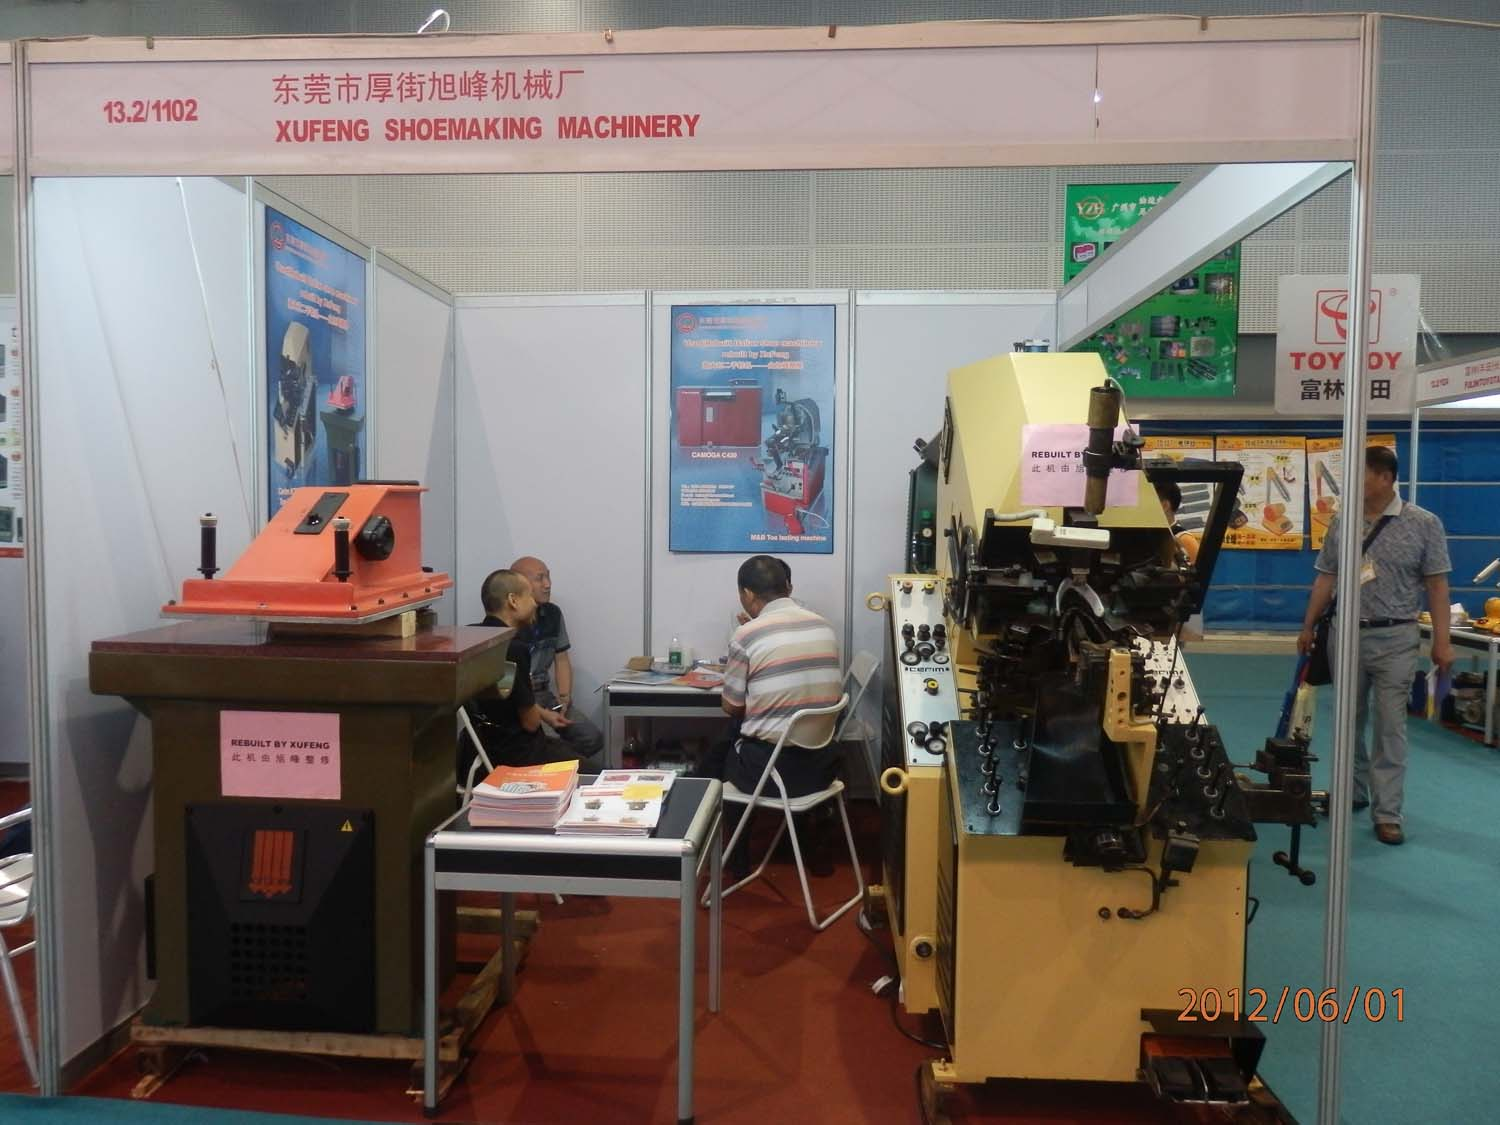 Dongguan Houjie Xufeng Shoemaking Machinery Factory